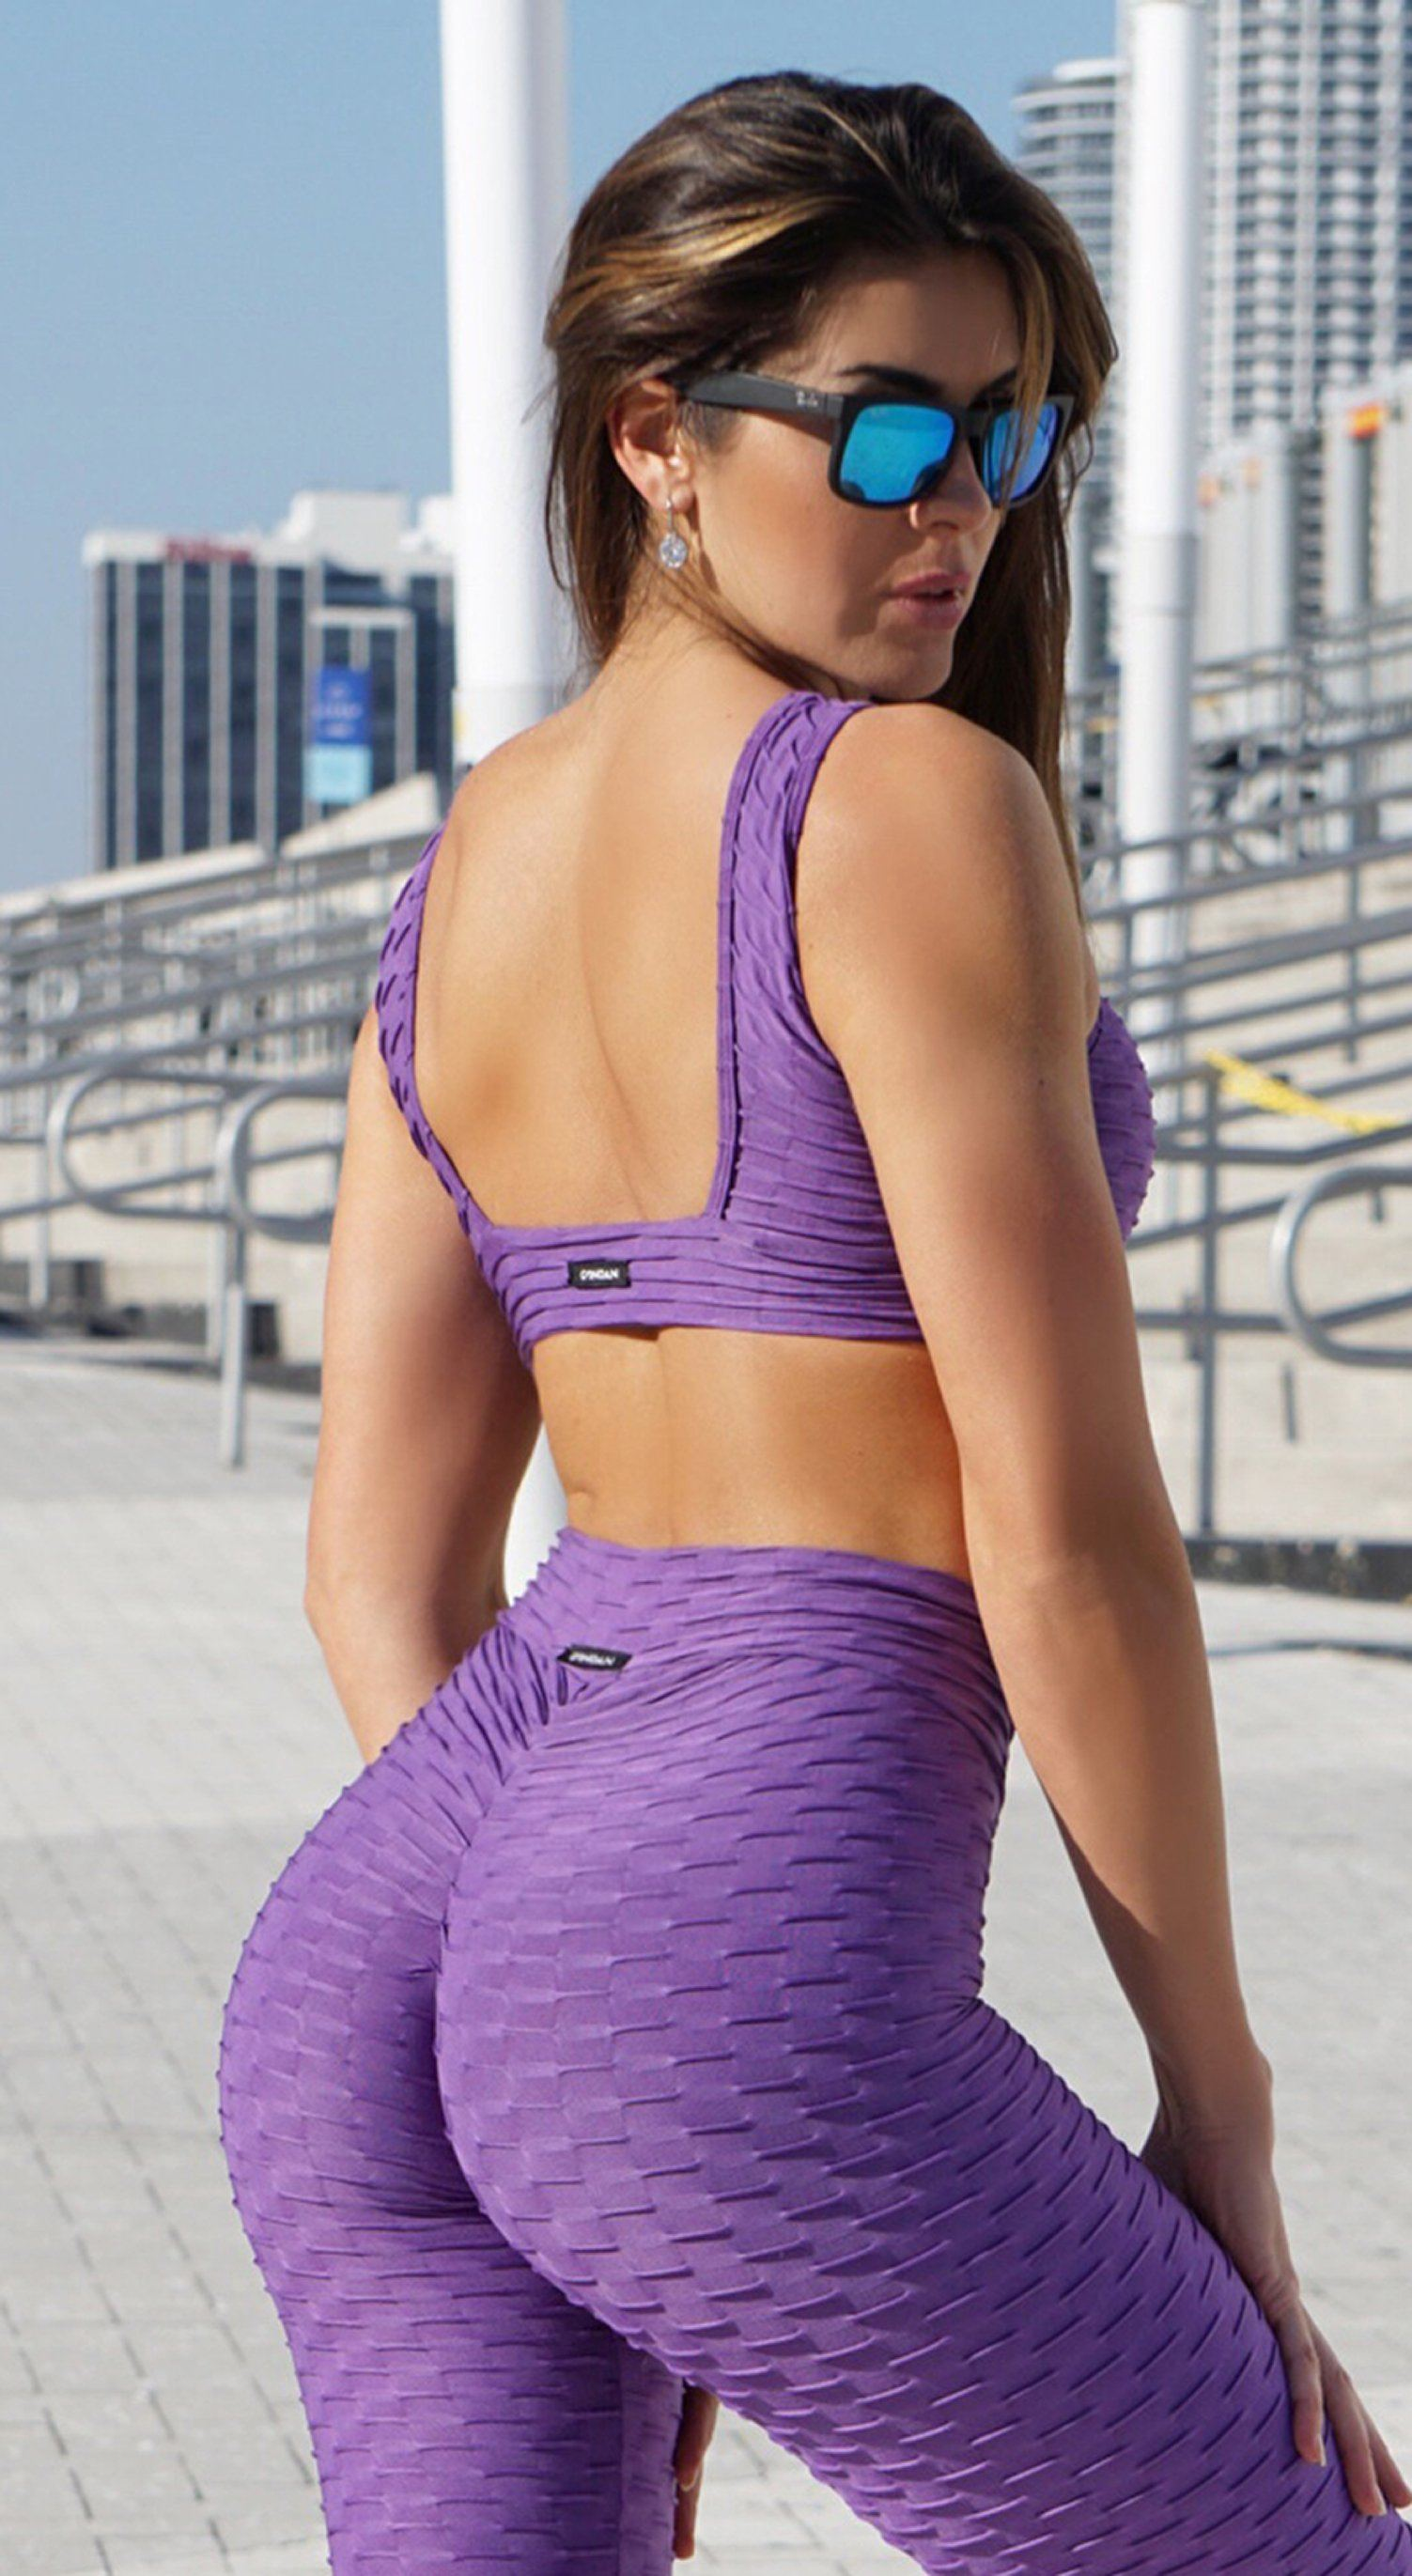 Brazilian Sports Bra - Honeycomb Cross Over Purple